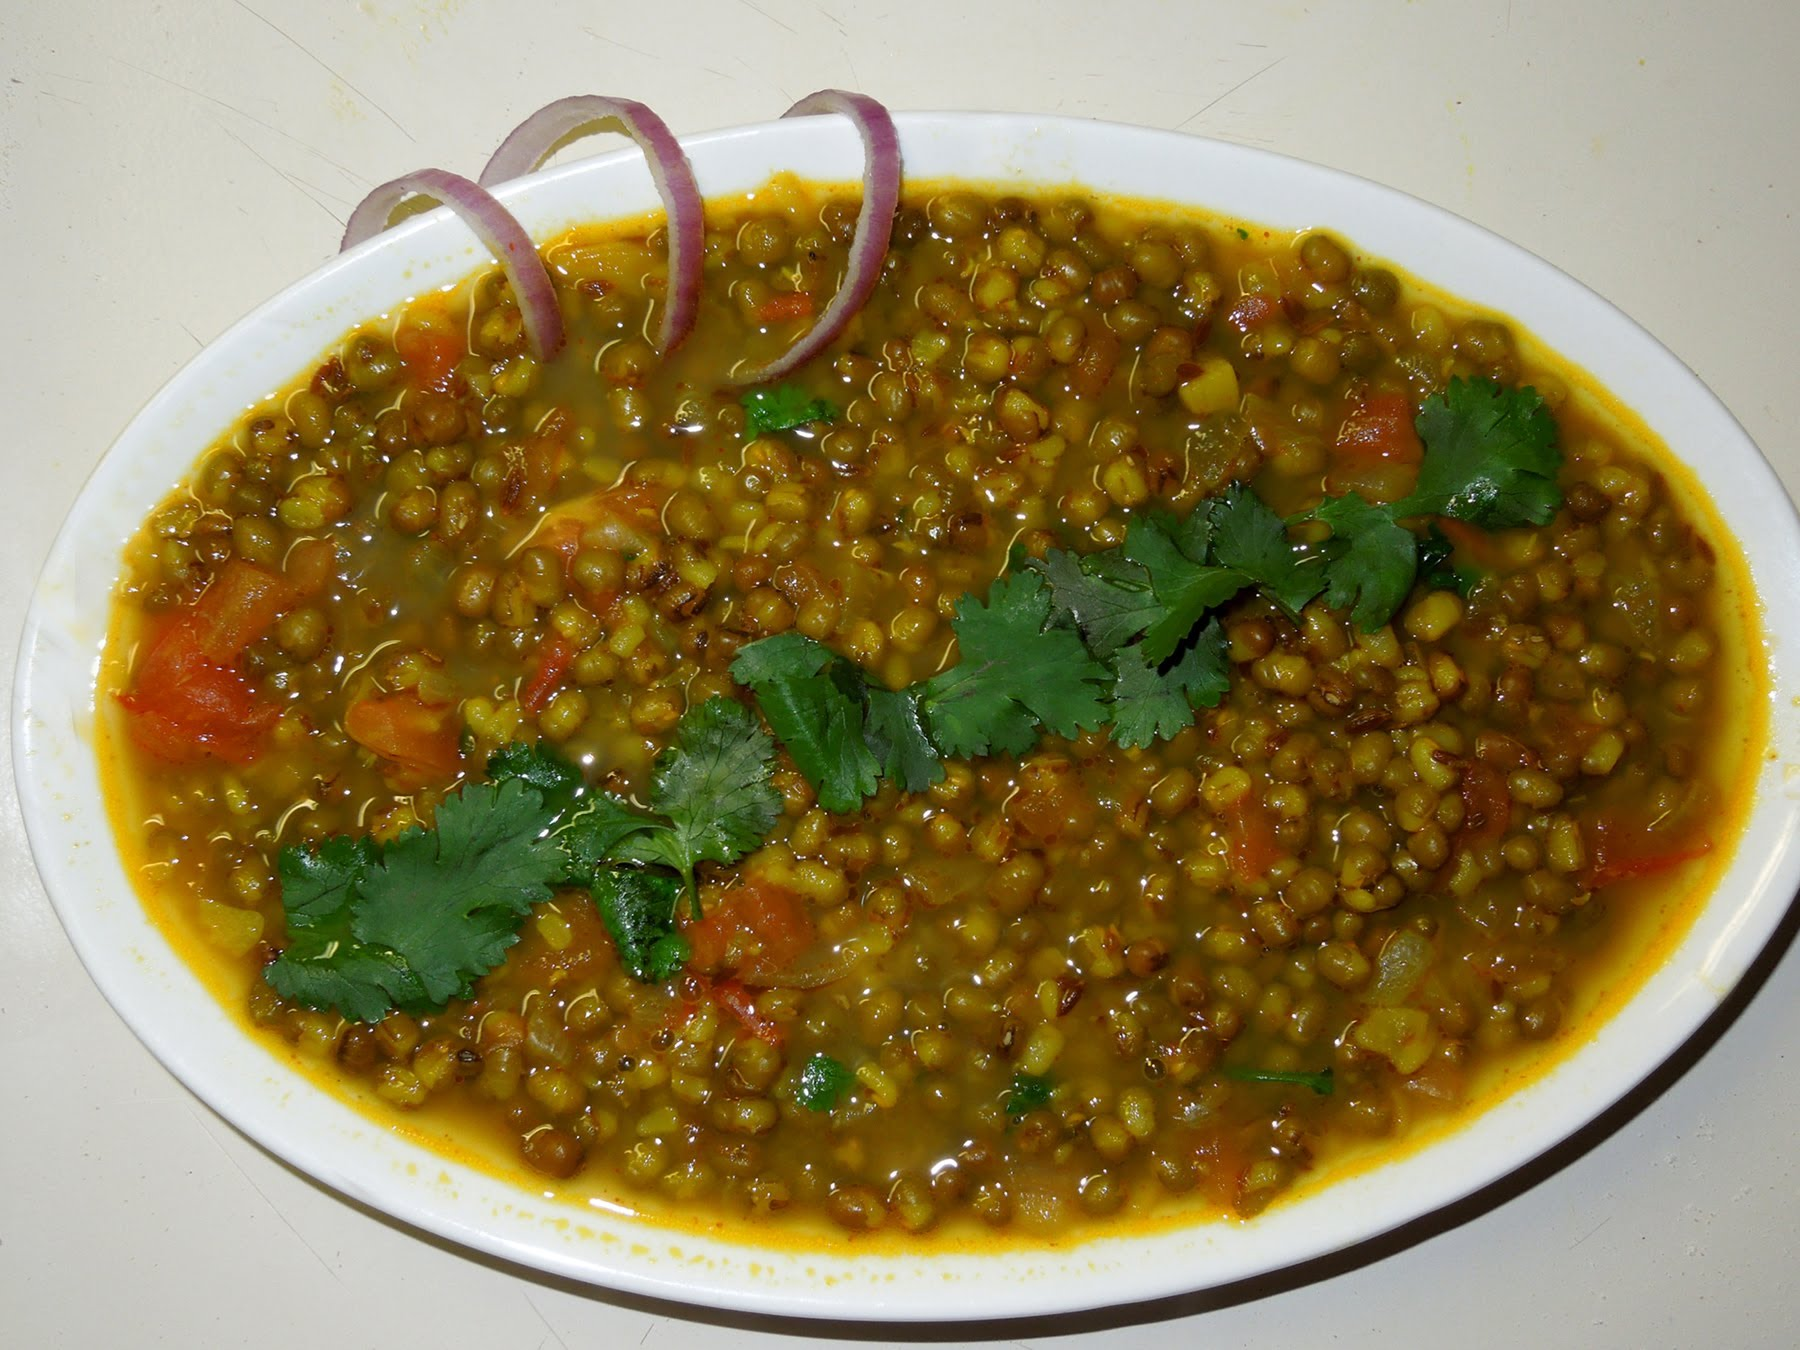 Images of images of north indian food spacehero 5 best north indian food recipes forumfinder Images